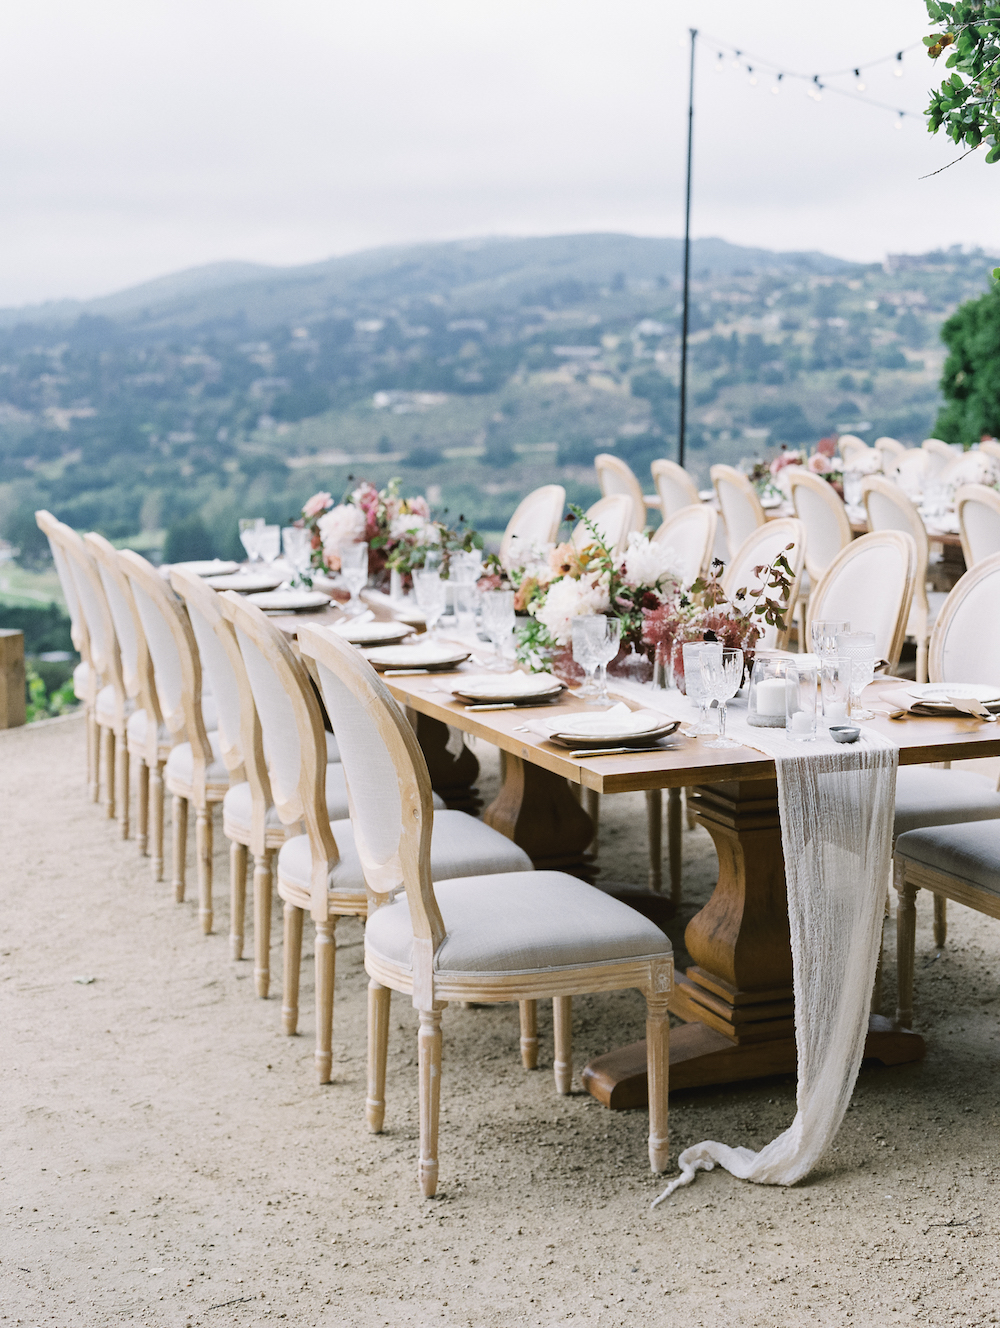 We suggested this dining configuration so each guest had a view of the valley beyond. Environment, atmosphere, and experiential design are everything.  Photo by Michele Beckwith.  Event design by Lambert Floral Studio.